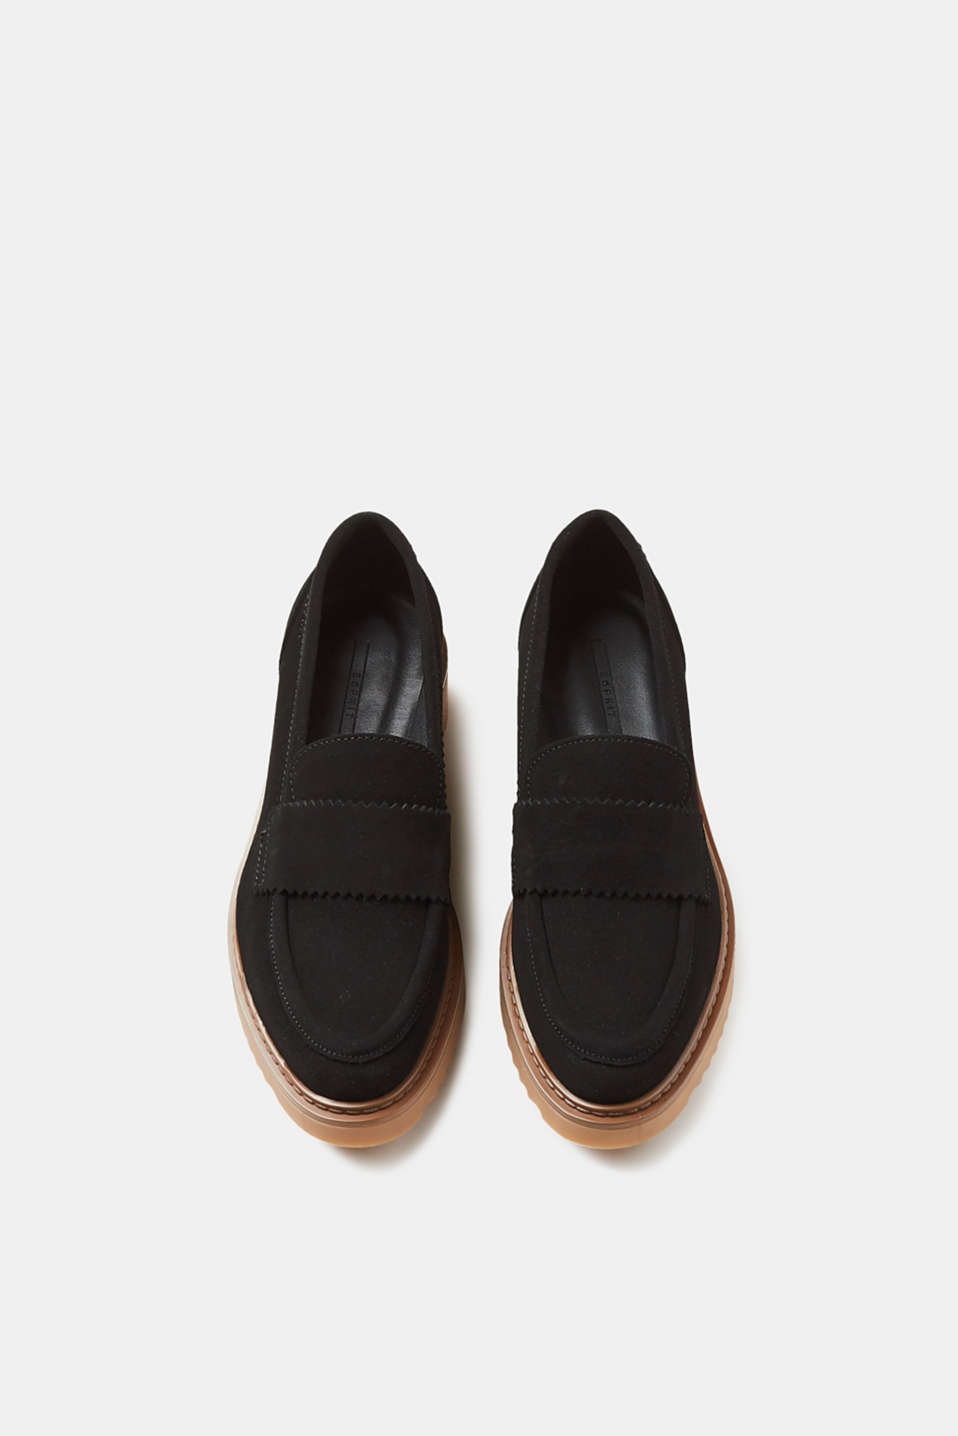 Leren loafers met plateauzool